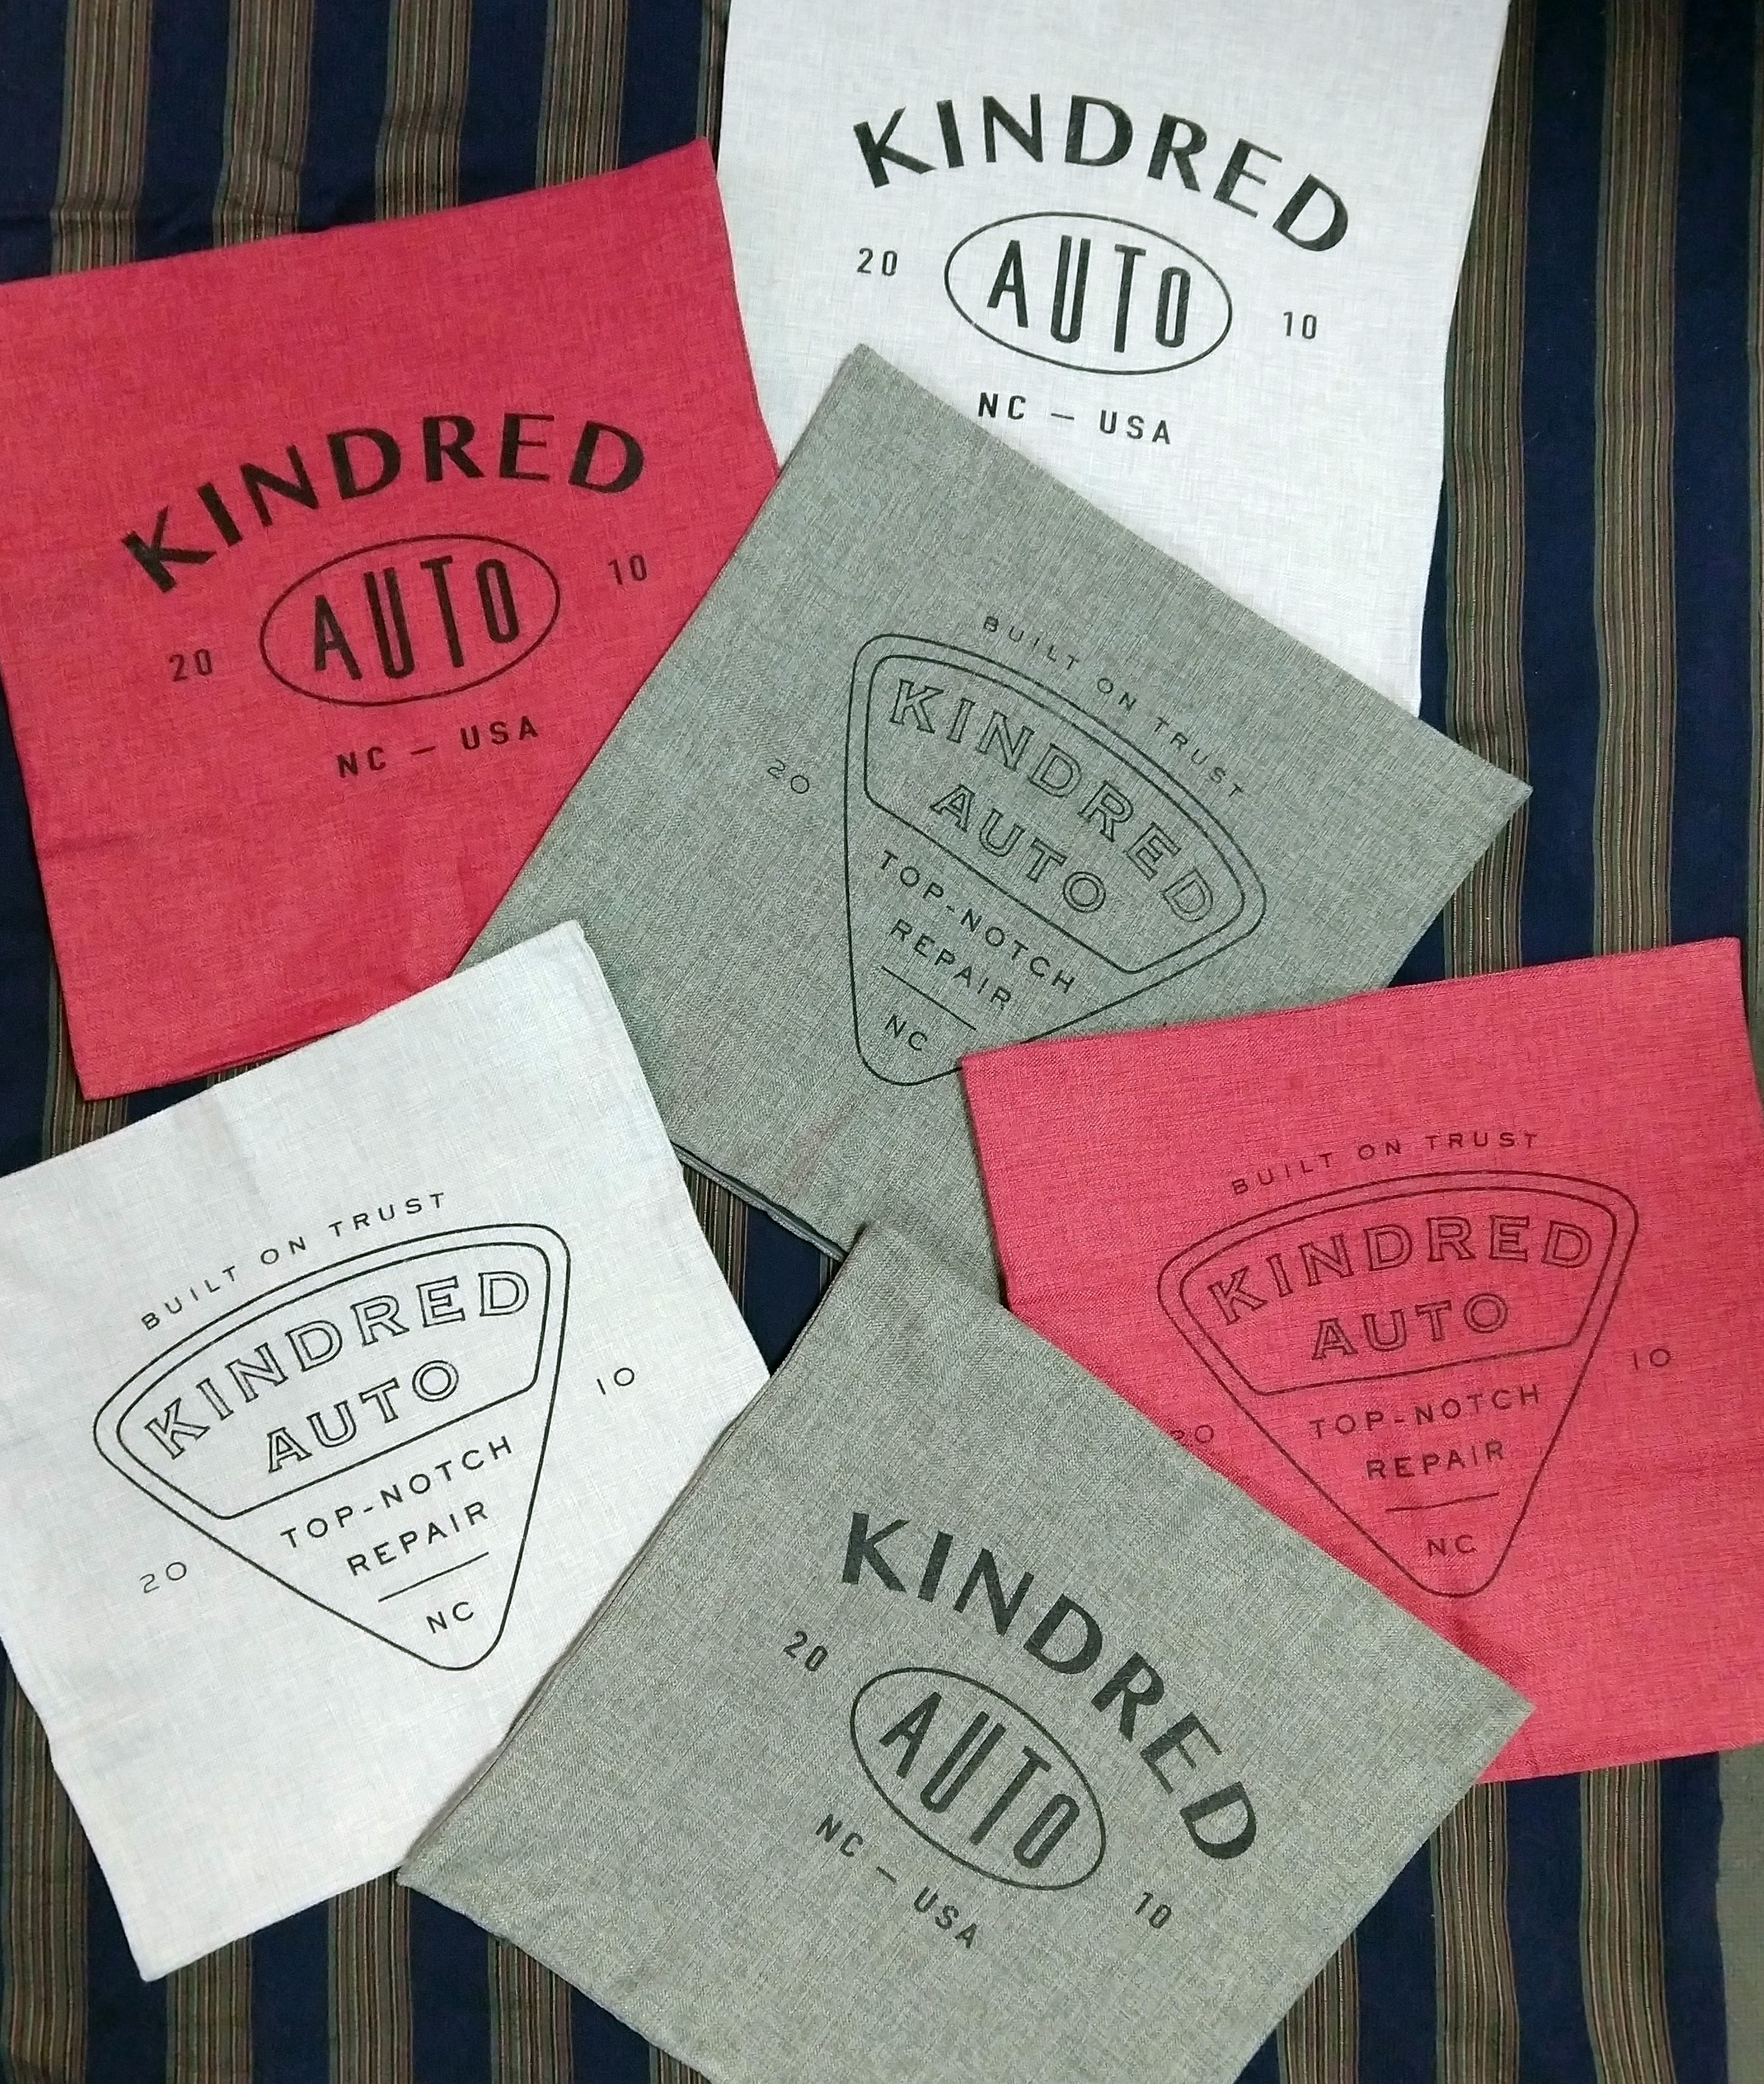 Kindred Auto